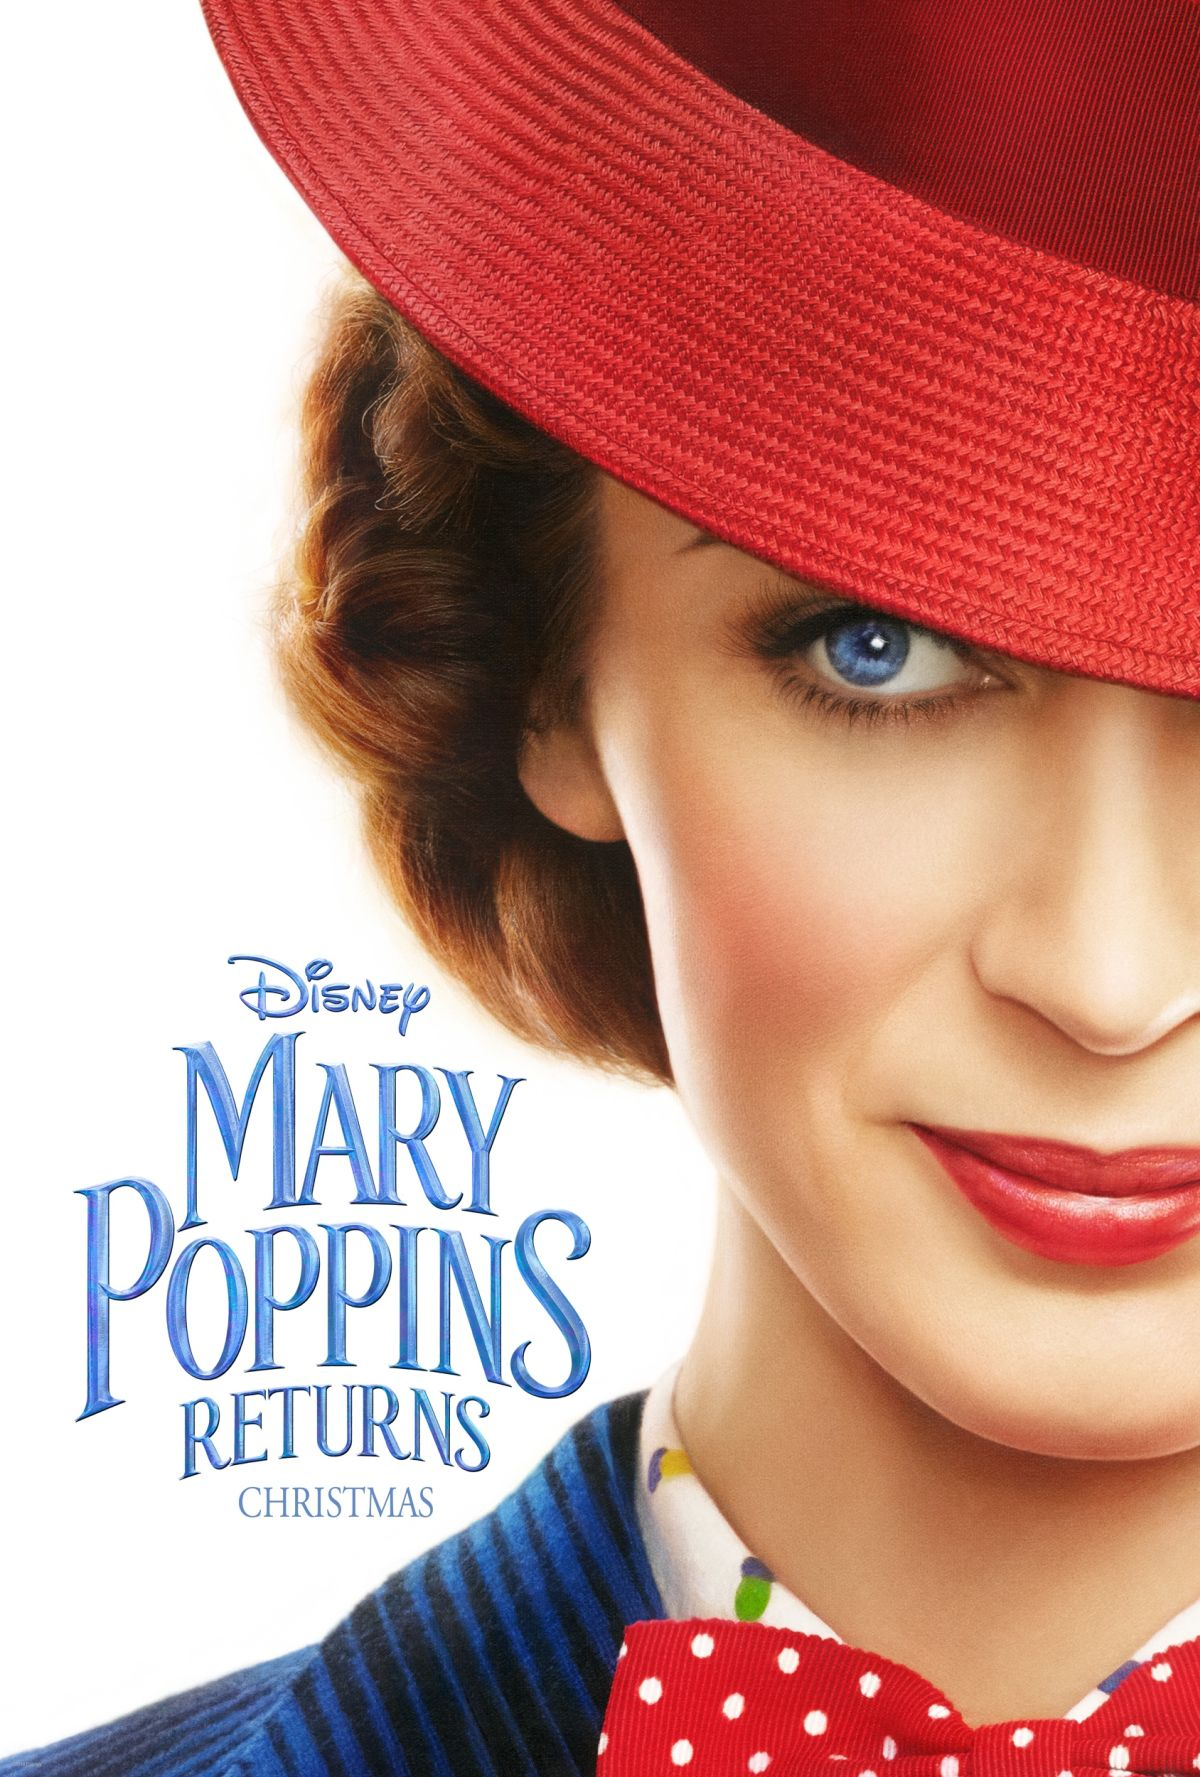 marypoppinsreturns5a9cf5963902e